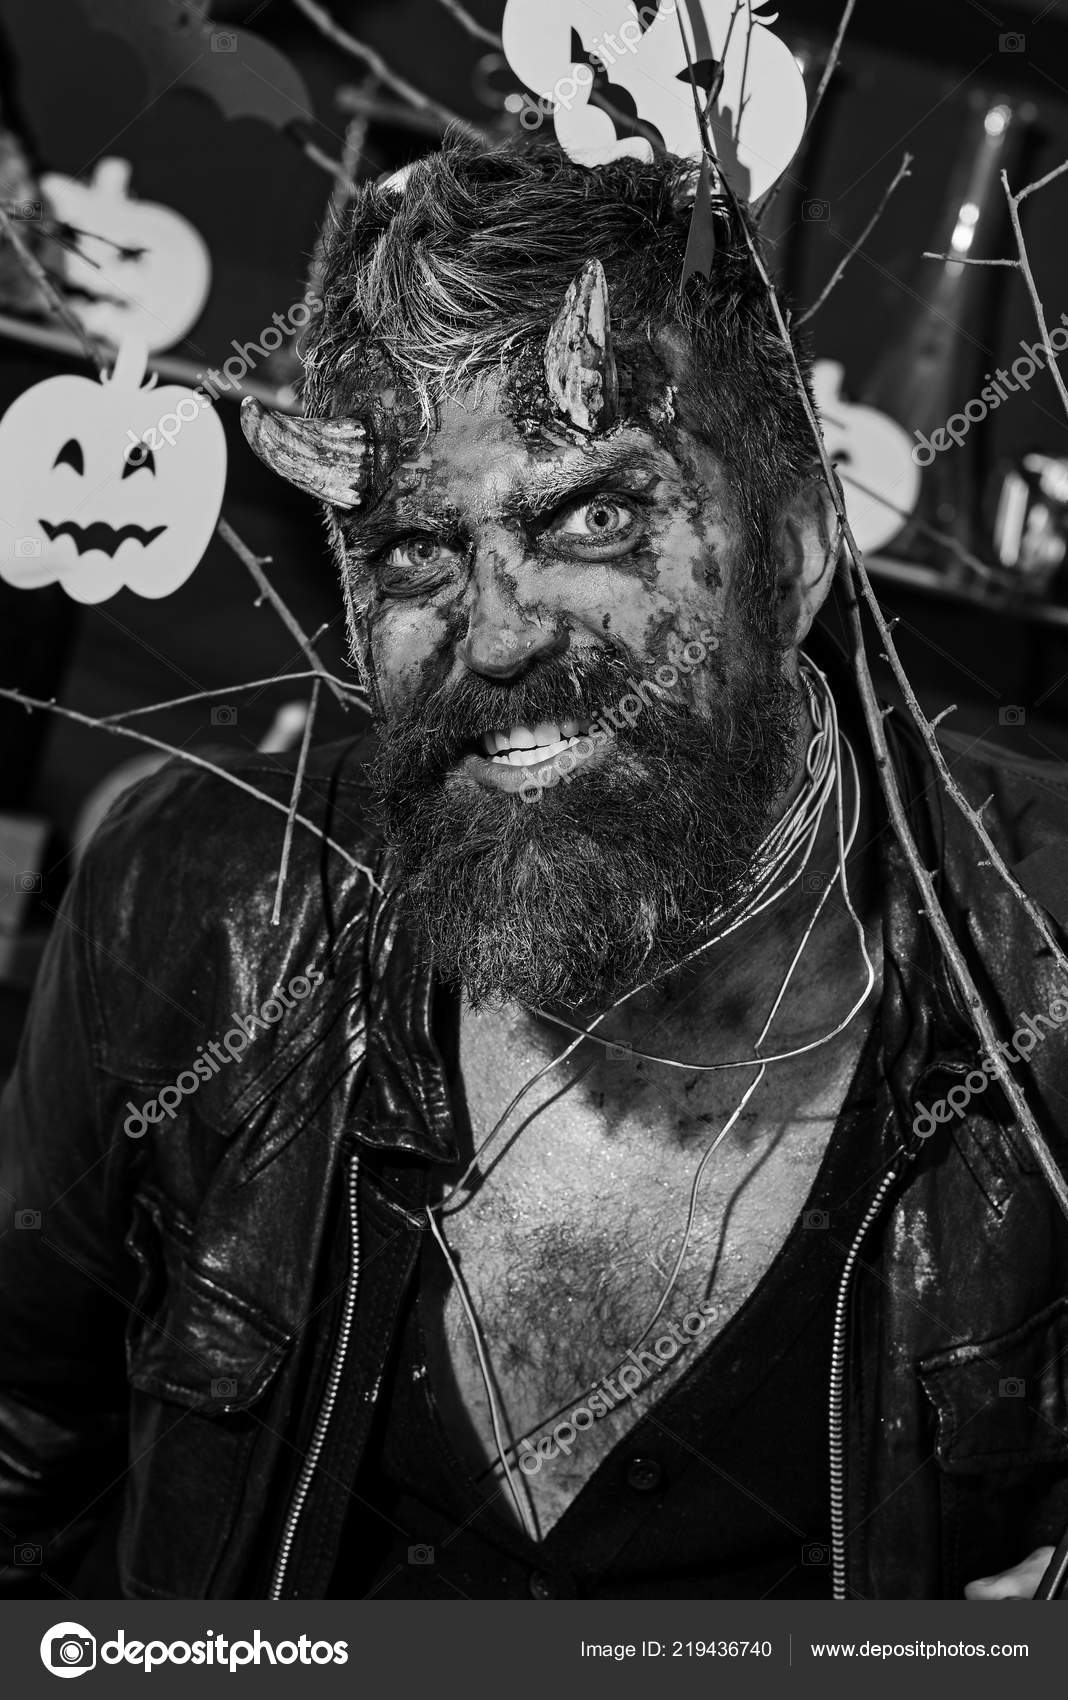 Scary Halloween Makeup For Guys With Beards.Halloween Costume Party Concept Devil Or Monster Partying